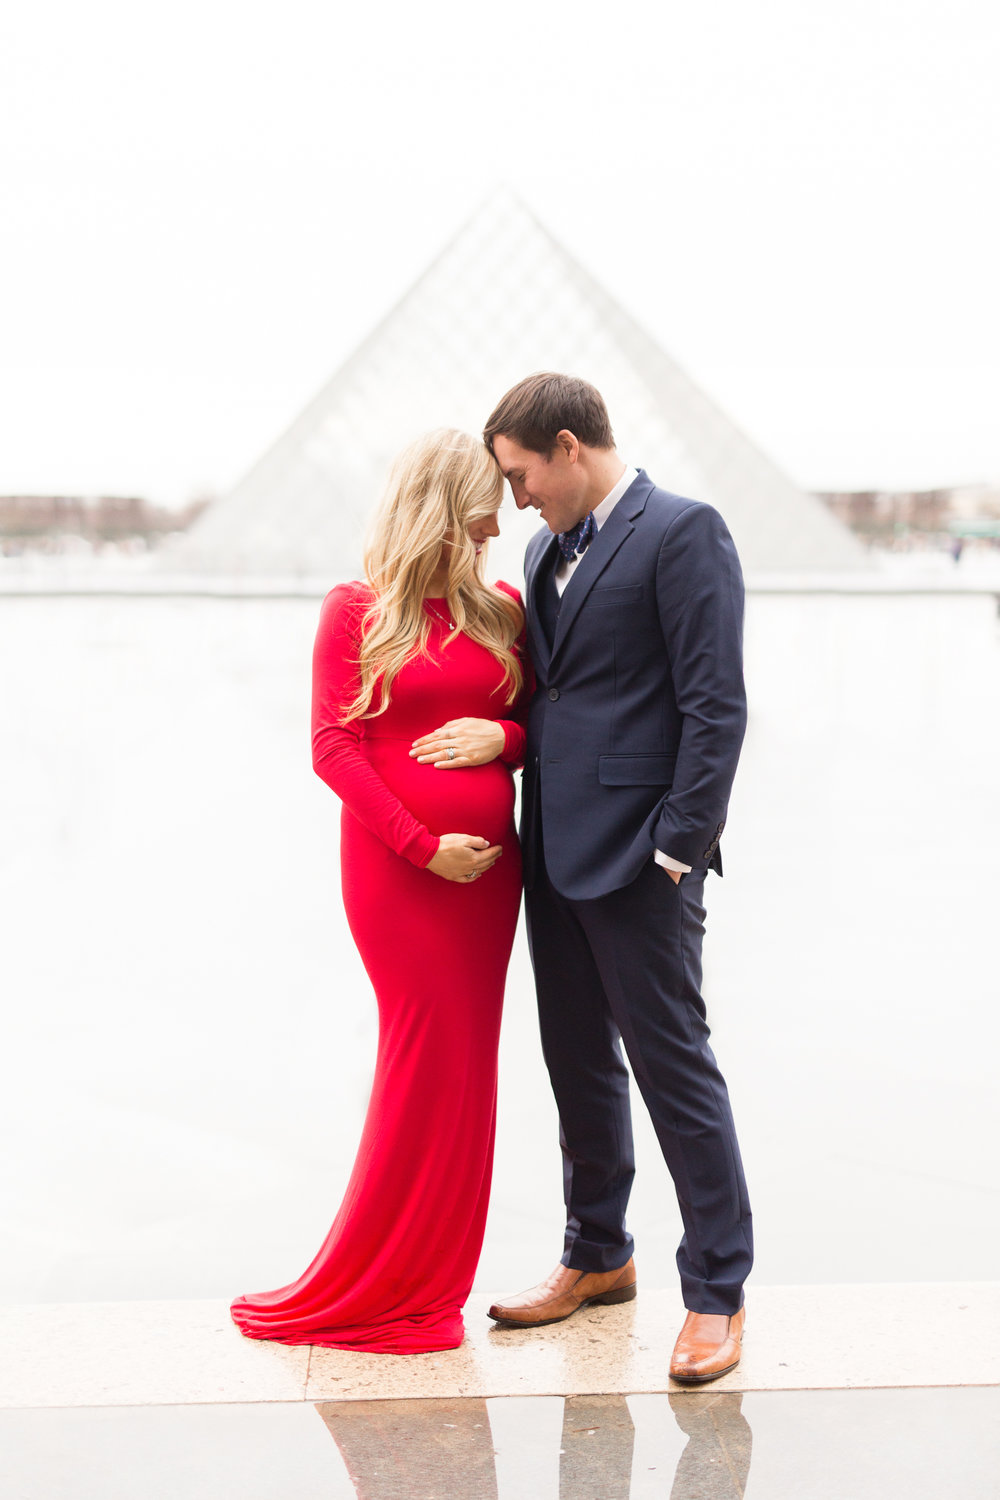 paris-maternity-photographer-katie-donnelly-blogger-chloe-arnold-palais-royal-louvre-8.jpg